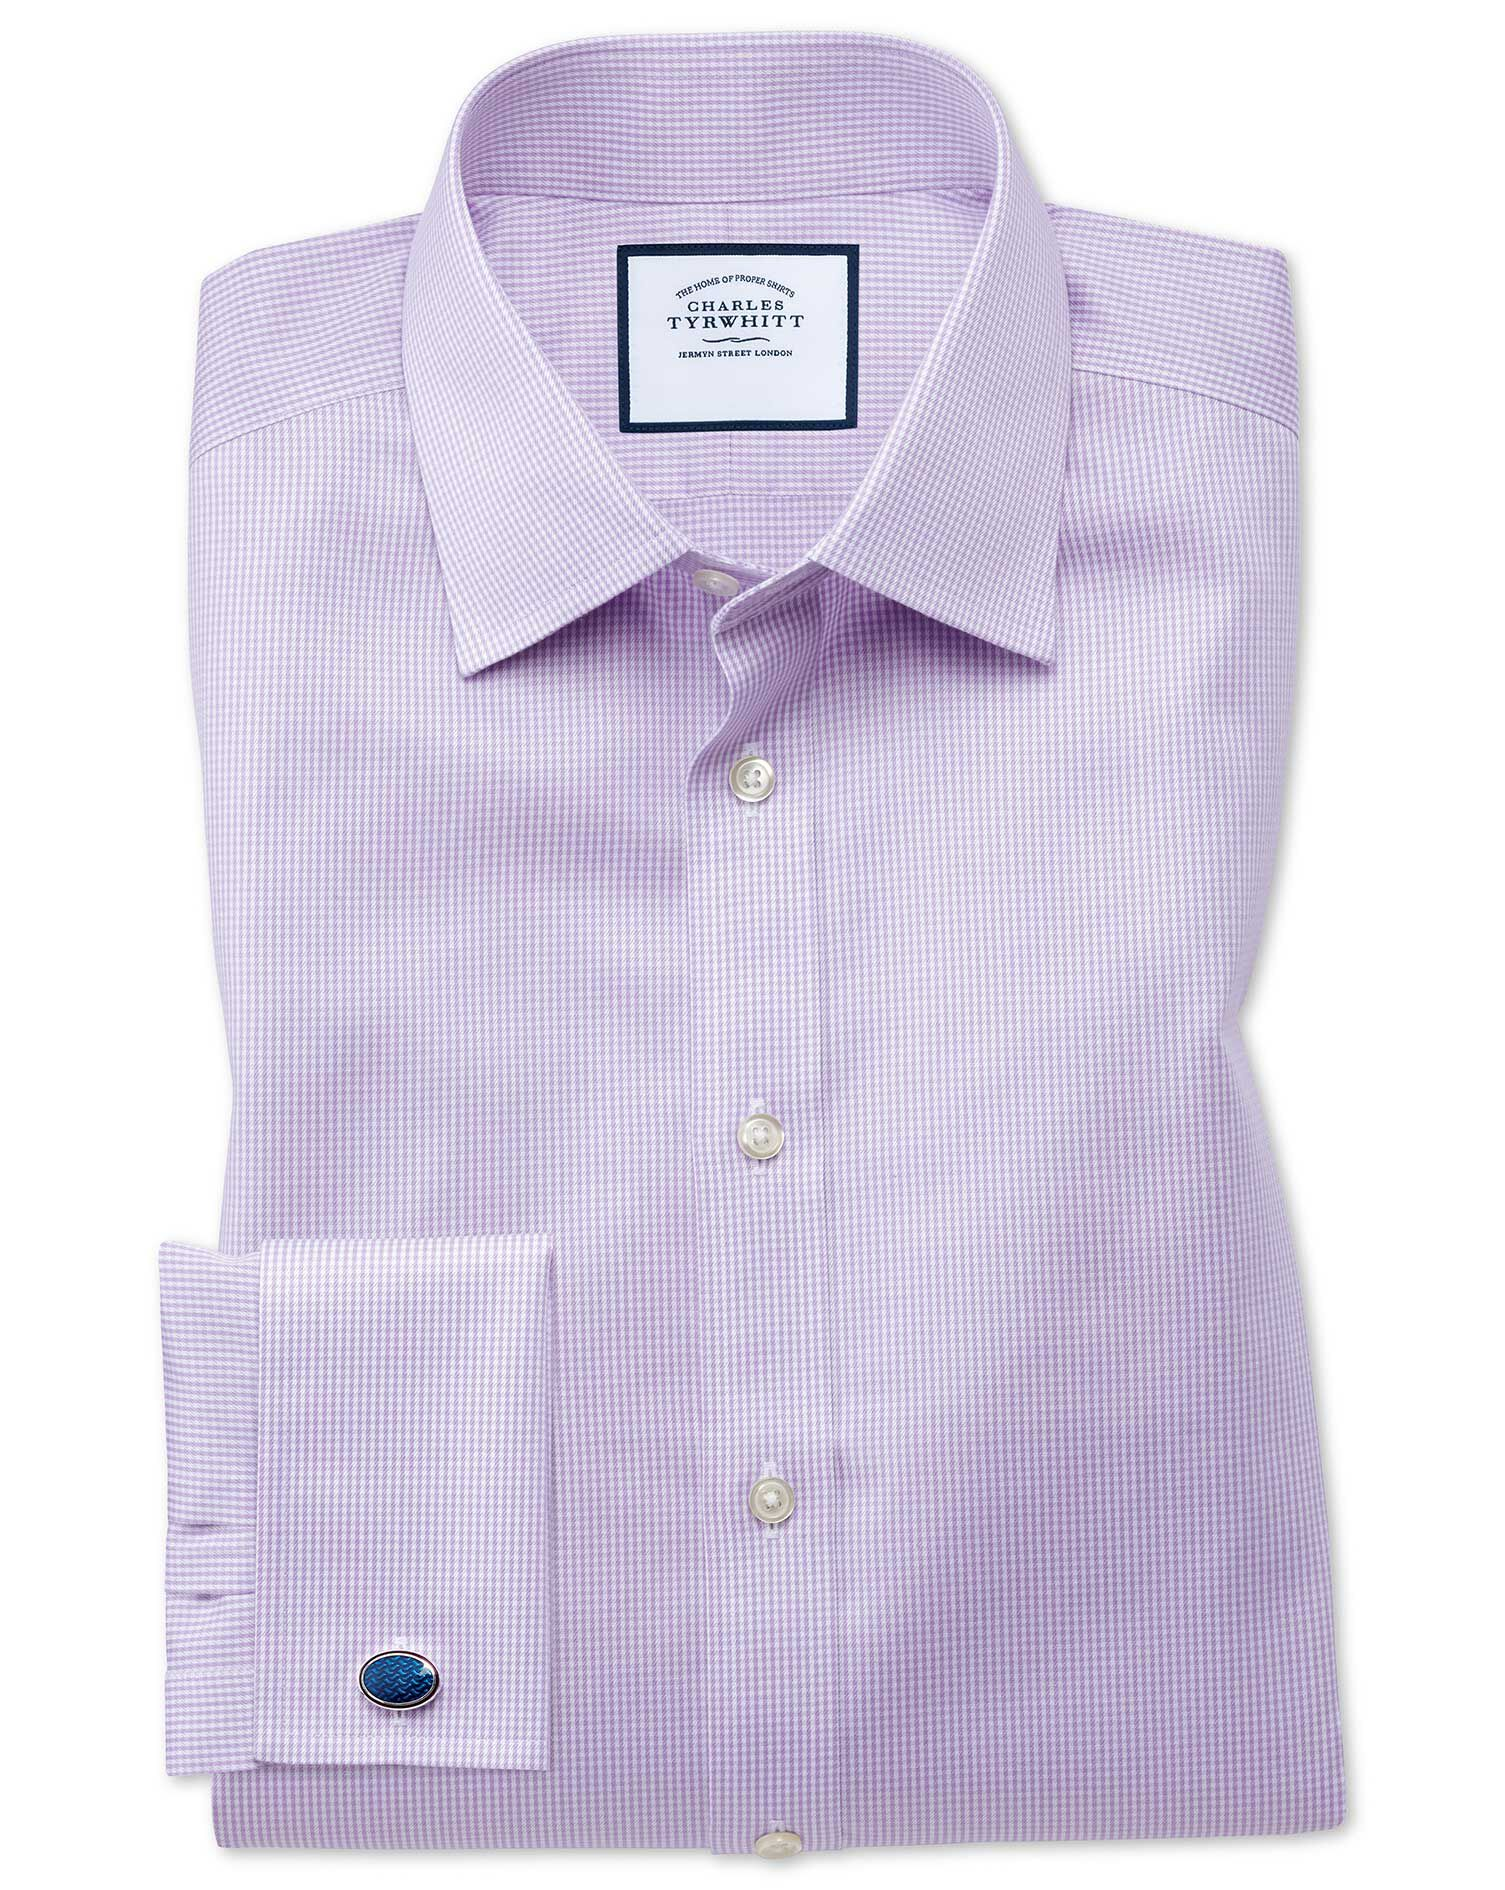 Slim Fit Non-Iron Puppytooth Lilac Cotton Formal Shirt Single Cuff Size 17.5/36 by Charles Tyrwhitt